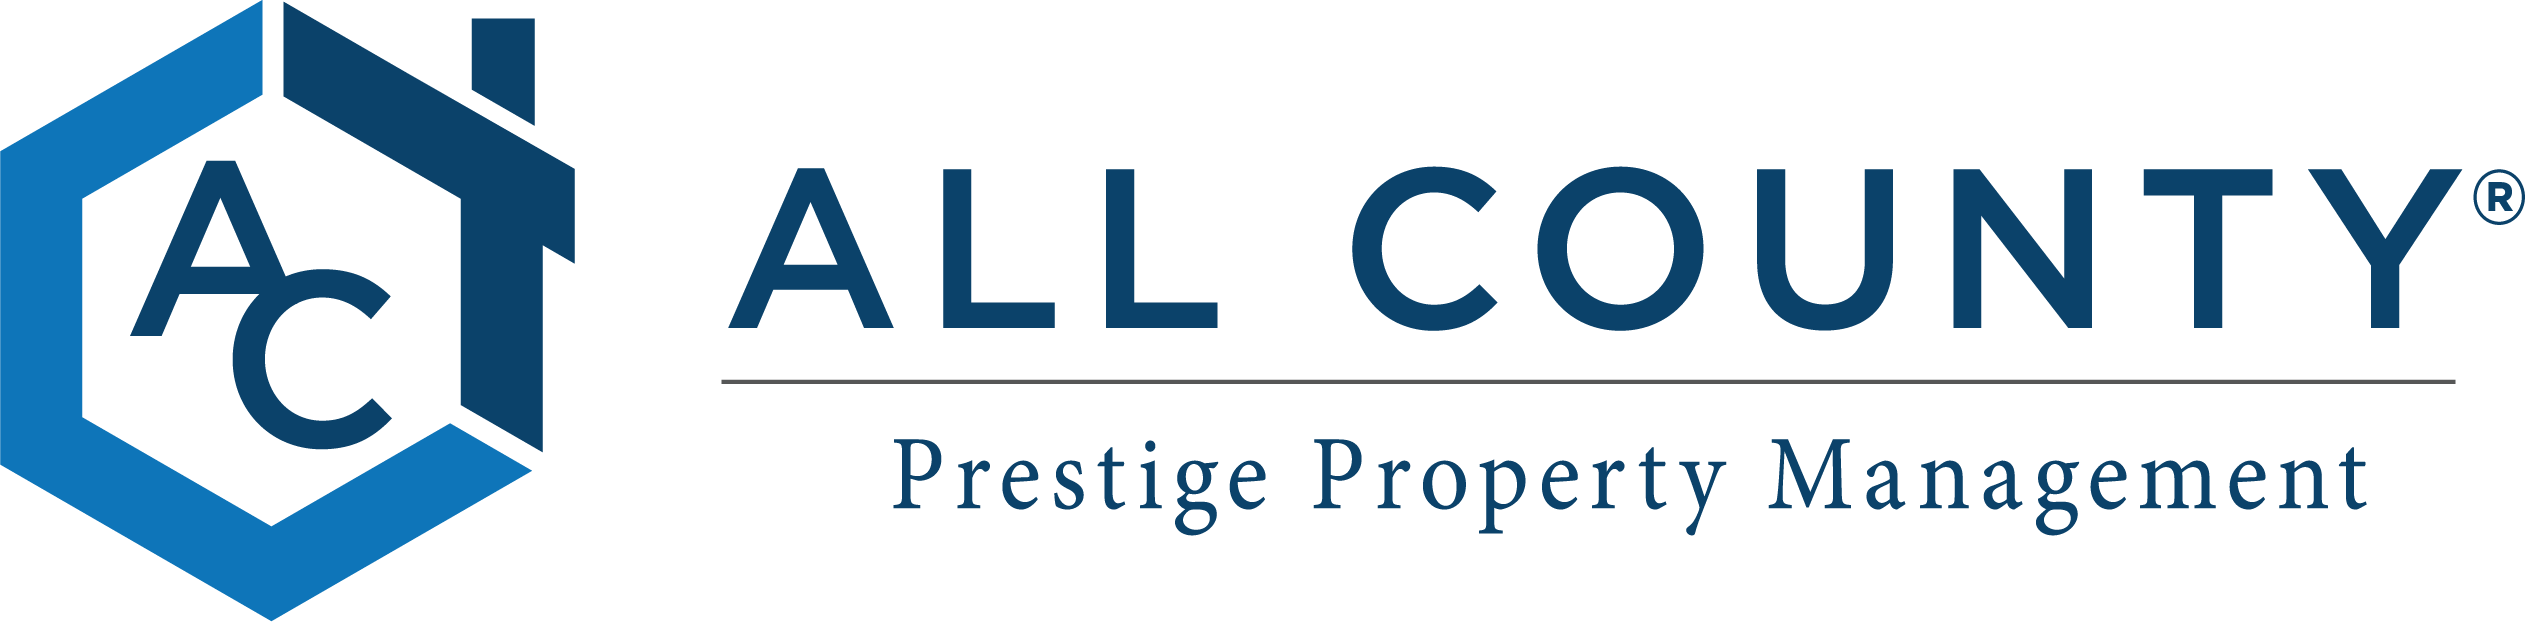 All County Prestige Property Management